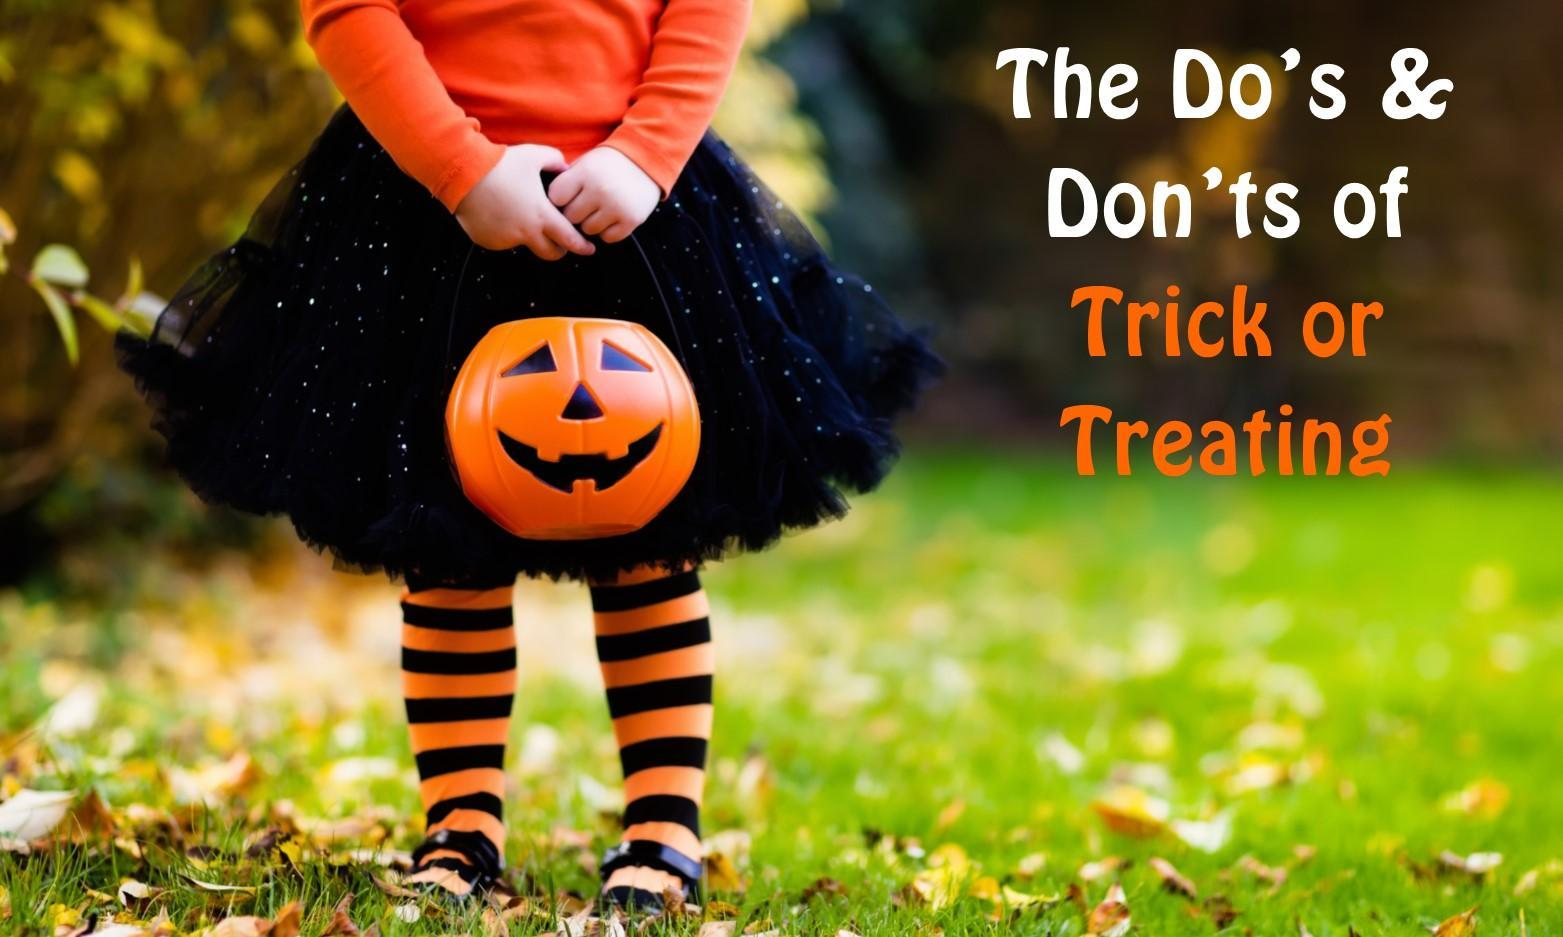 The Do's and Don'ts of Trick or Treating